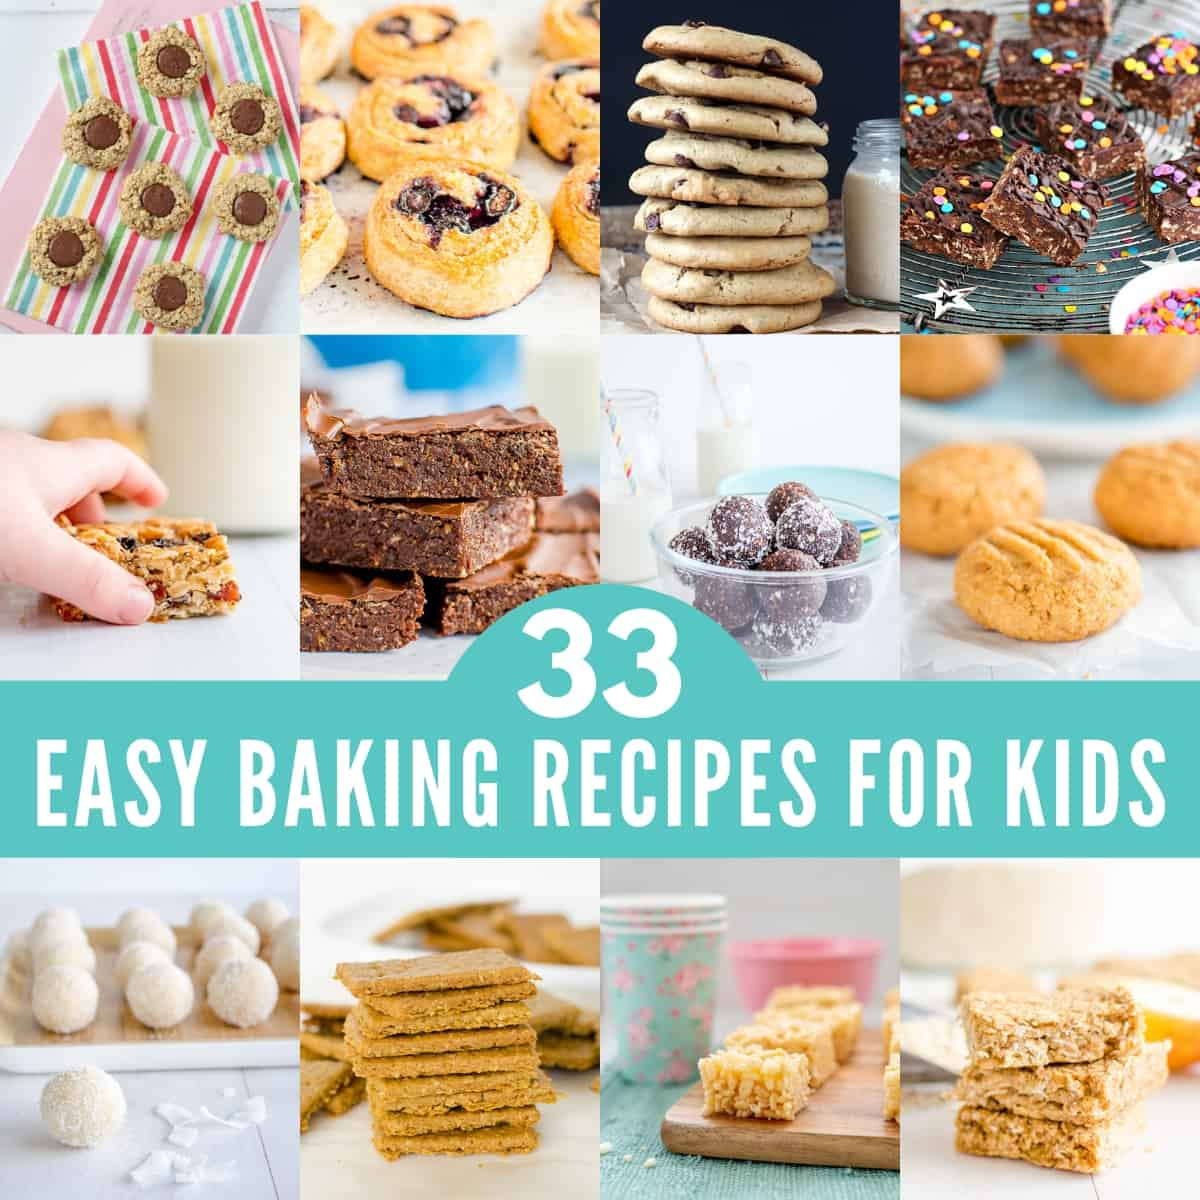 Collage of baking recipes for kids, cookies, cakes, slices